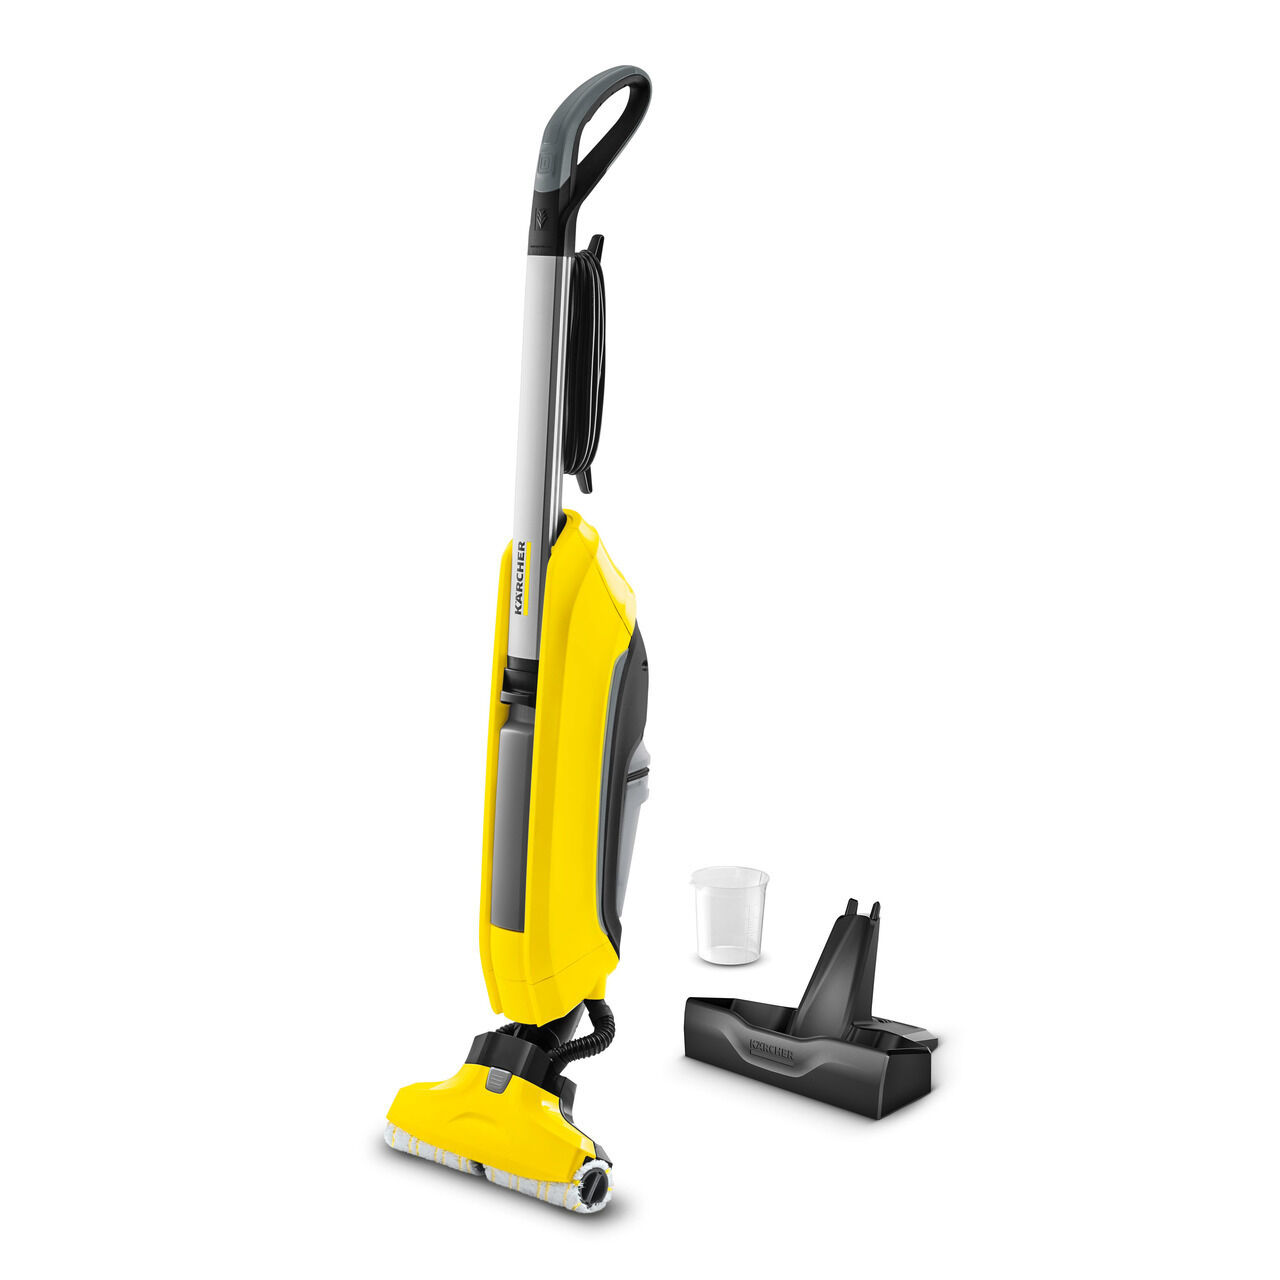 karcher fc 5 hard floor cleaner scrubber drier vacuum and wash in one pass. Black Bedroom Furniture Sets. Home Design Ideas